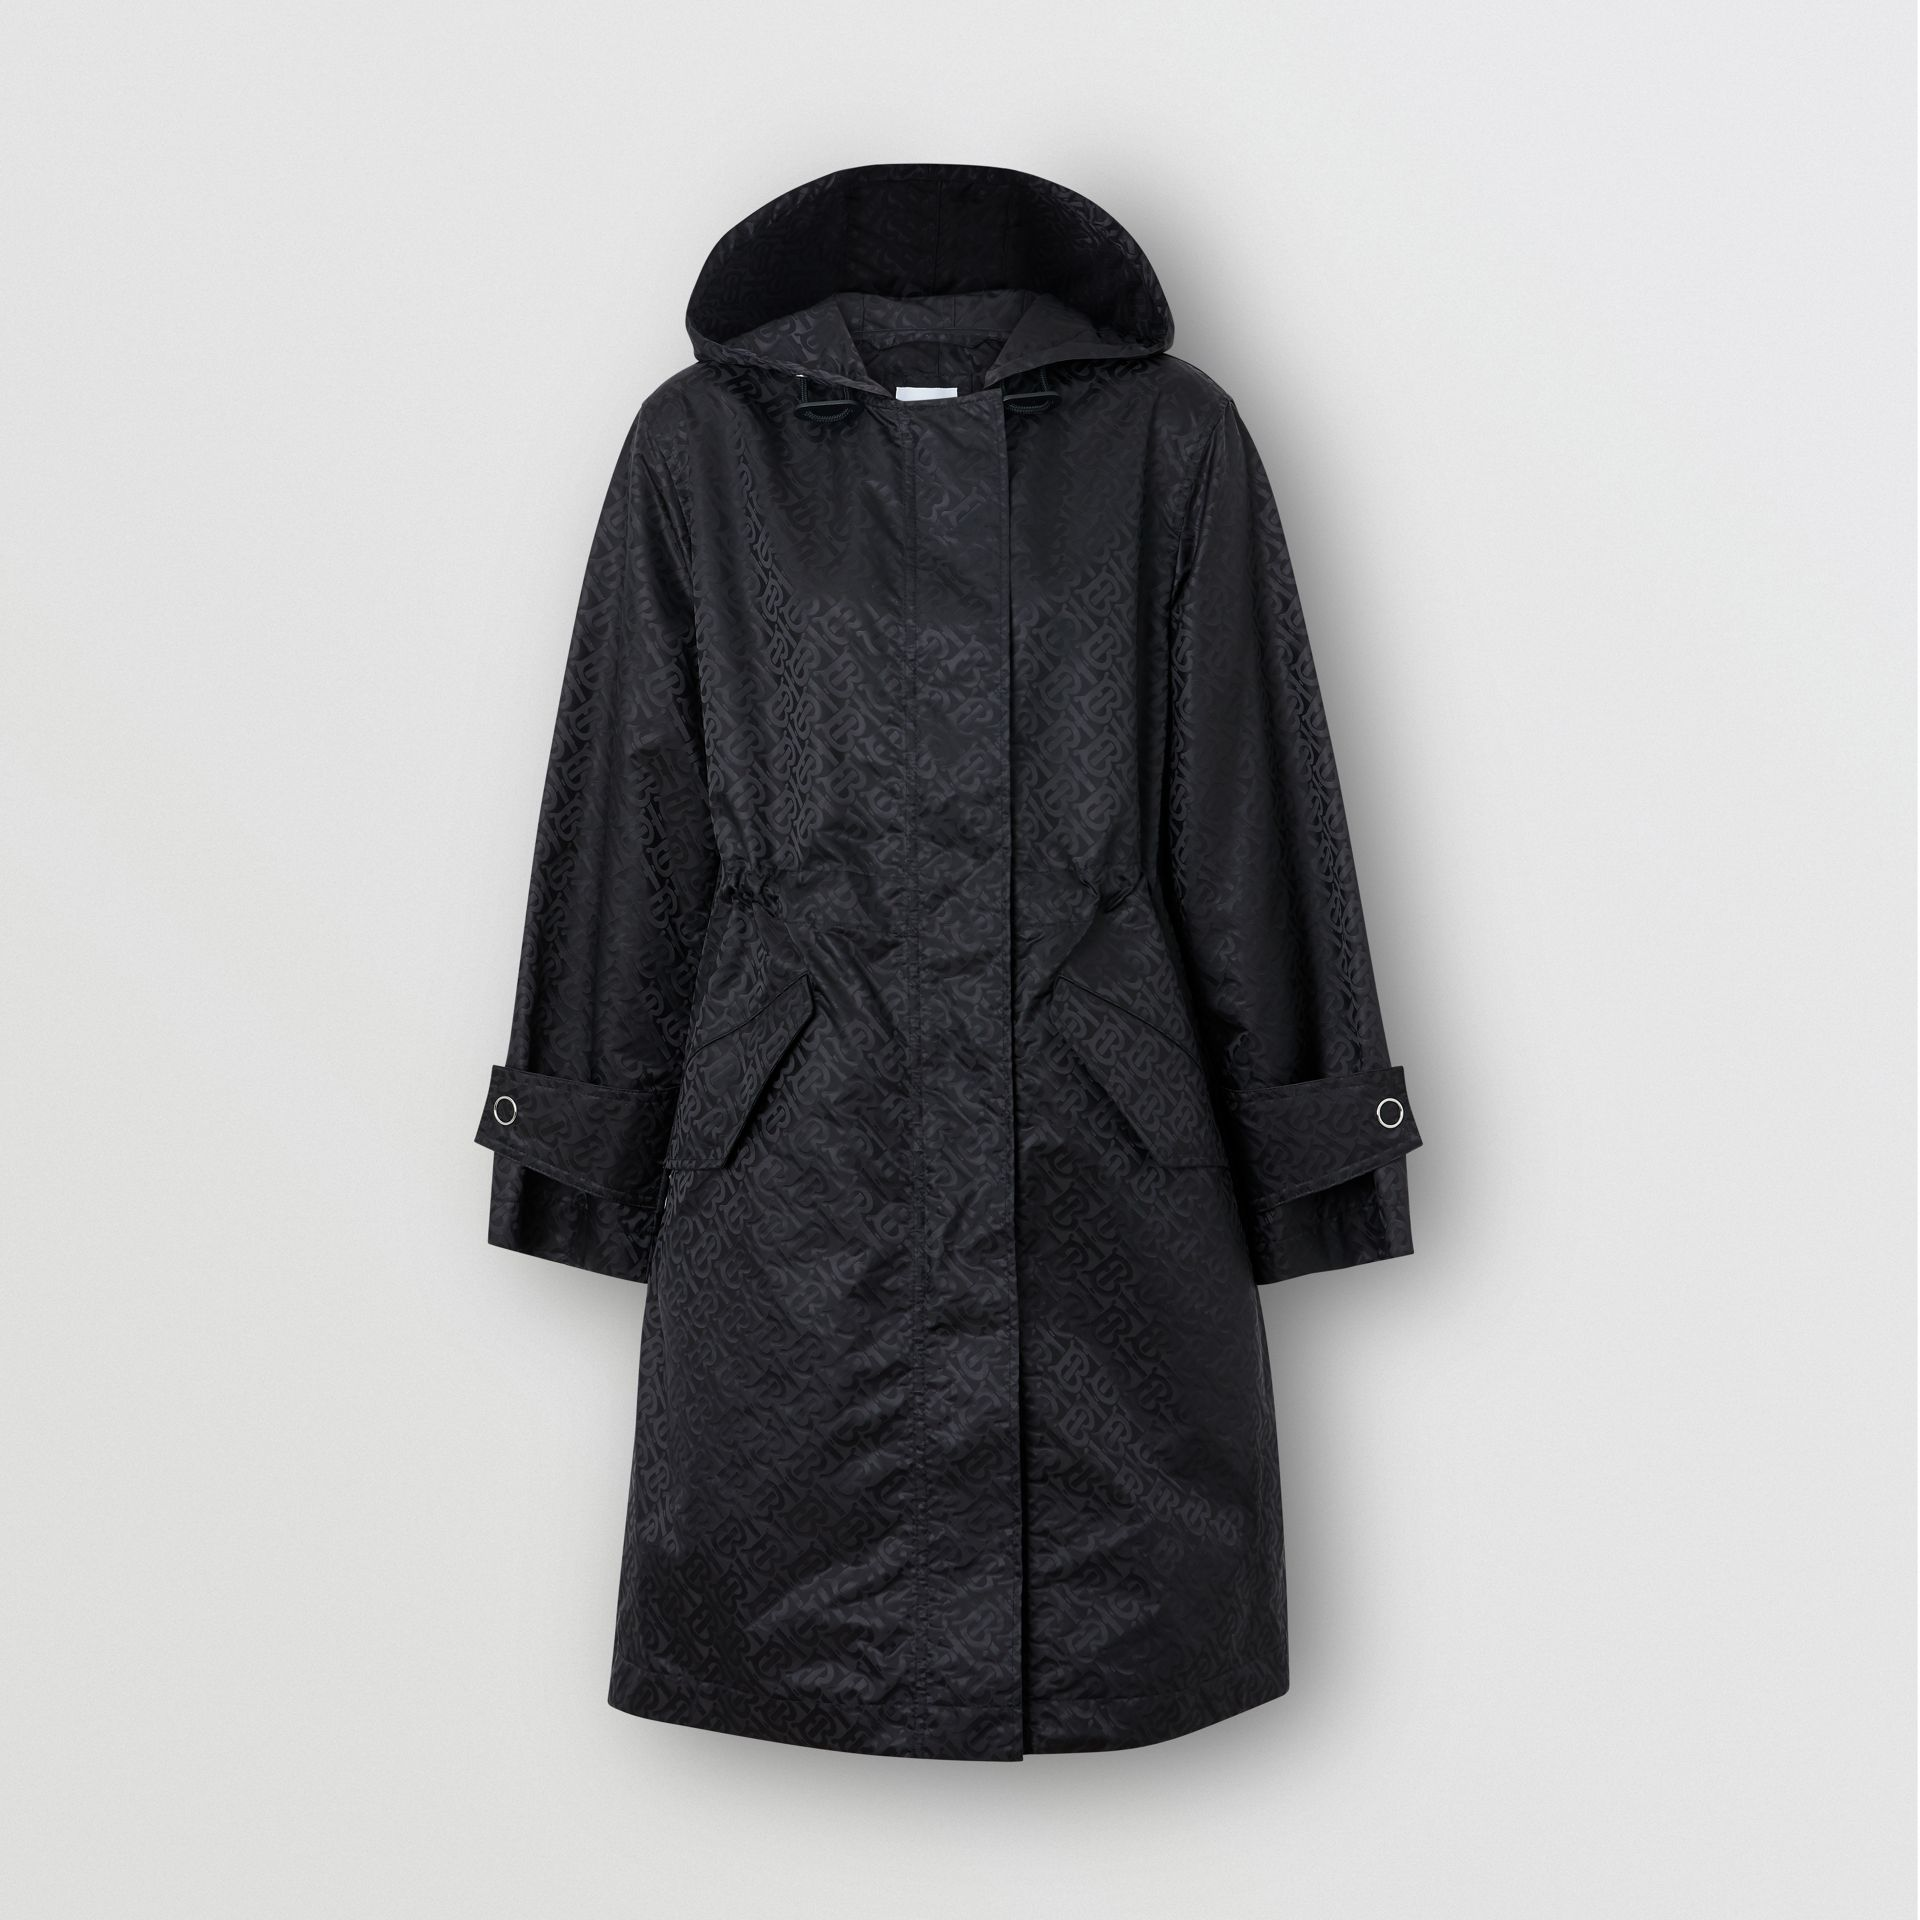 Monogram ECONYL® Jacquard Hooded Parka in Black - Women | Burberry Canada - gallery image 3